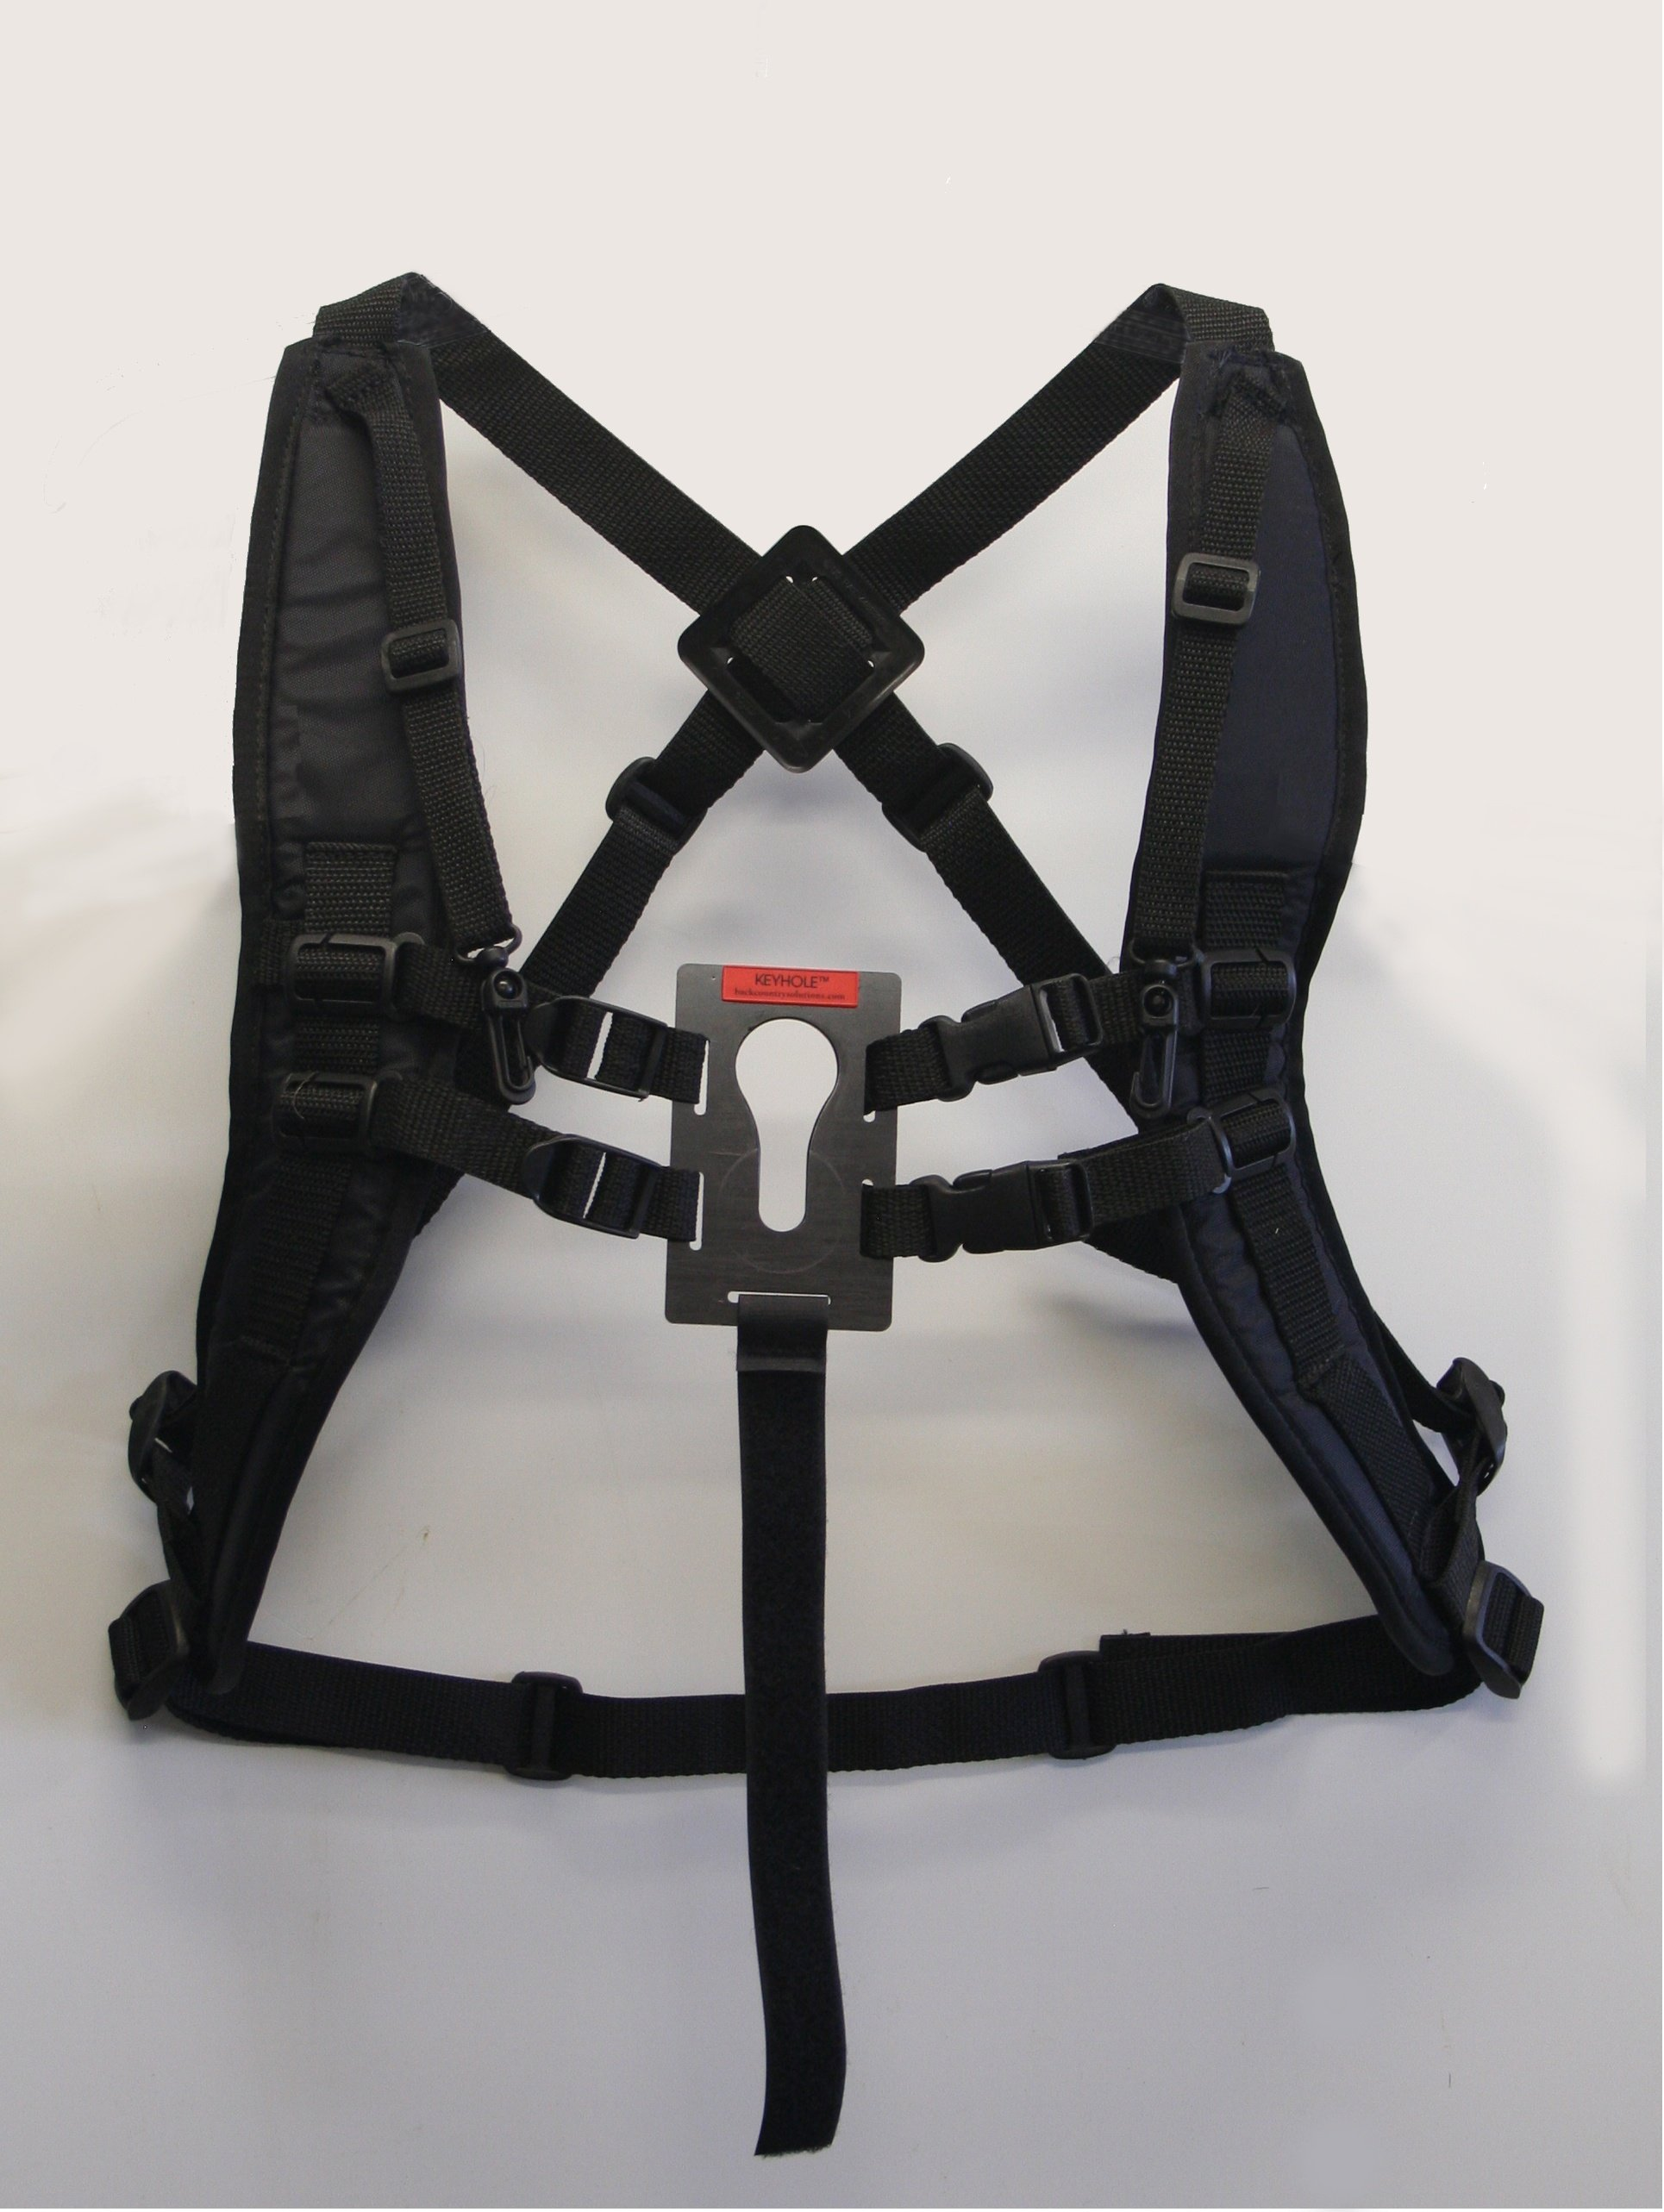 https://0201.nccdn.net/4_2/000/000/038/2d3/KEYHOLE-SYSTEM---shoulder-straps-and-harness-1930x2566.jpg